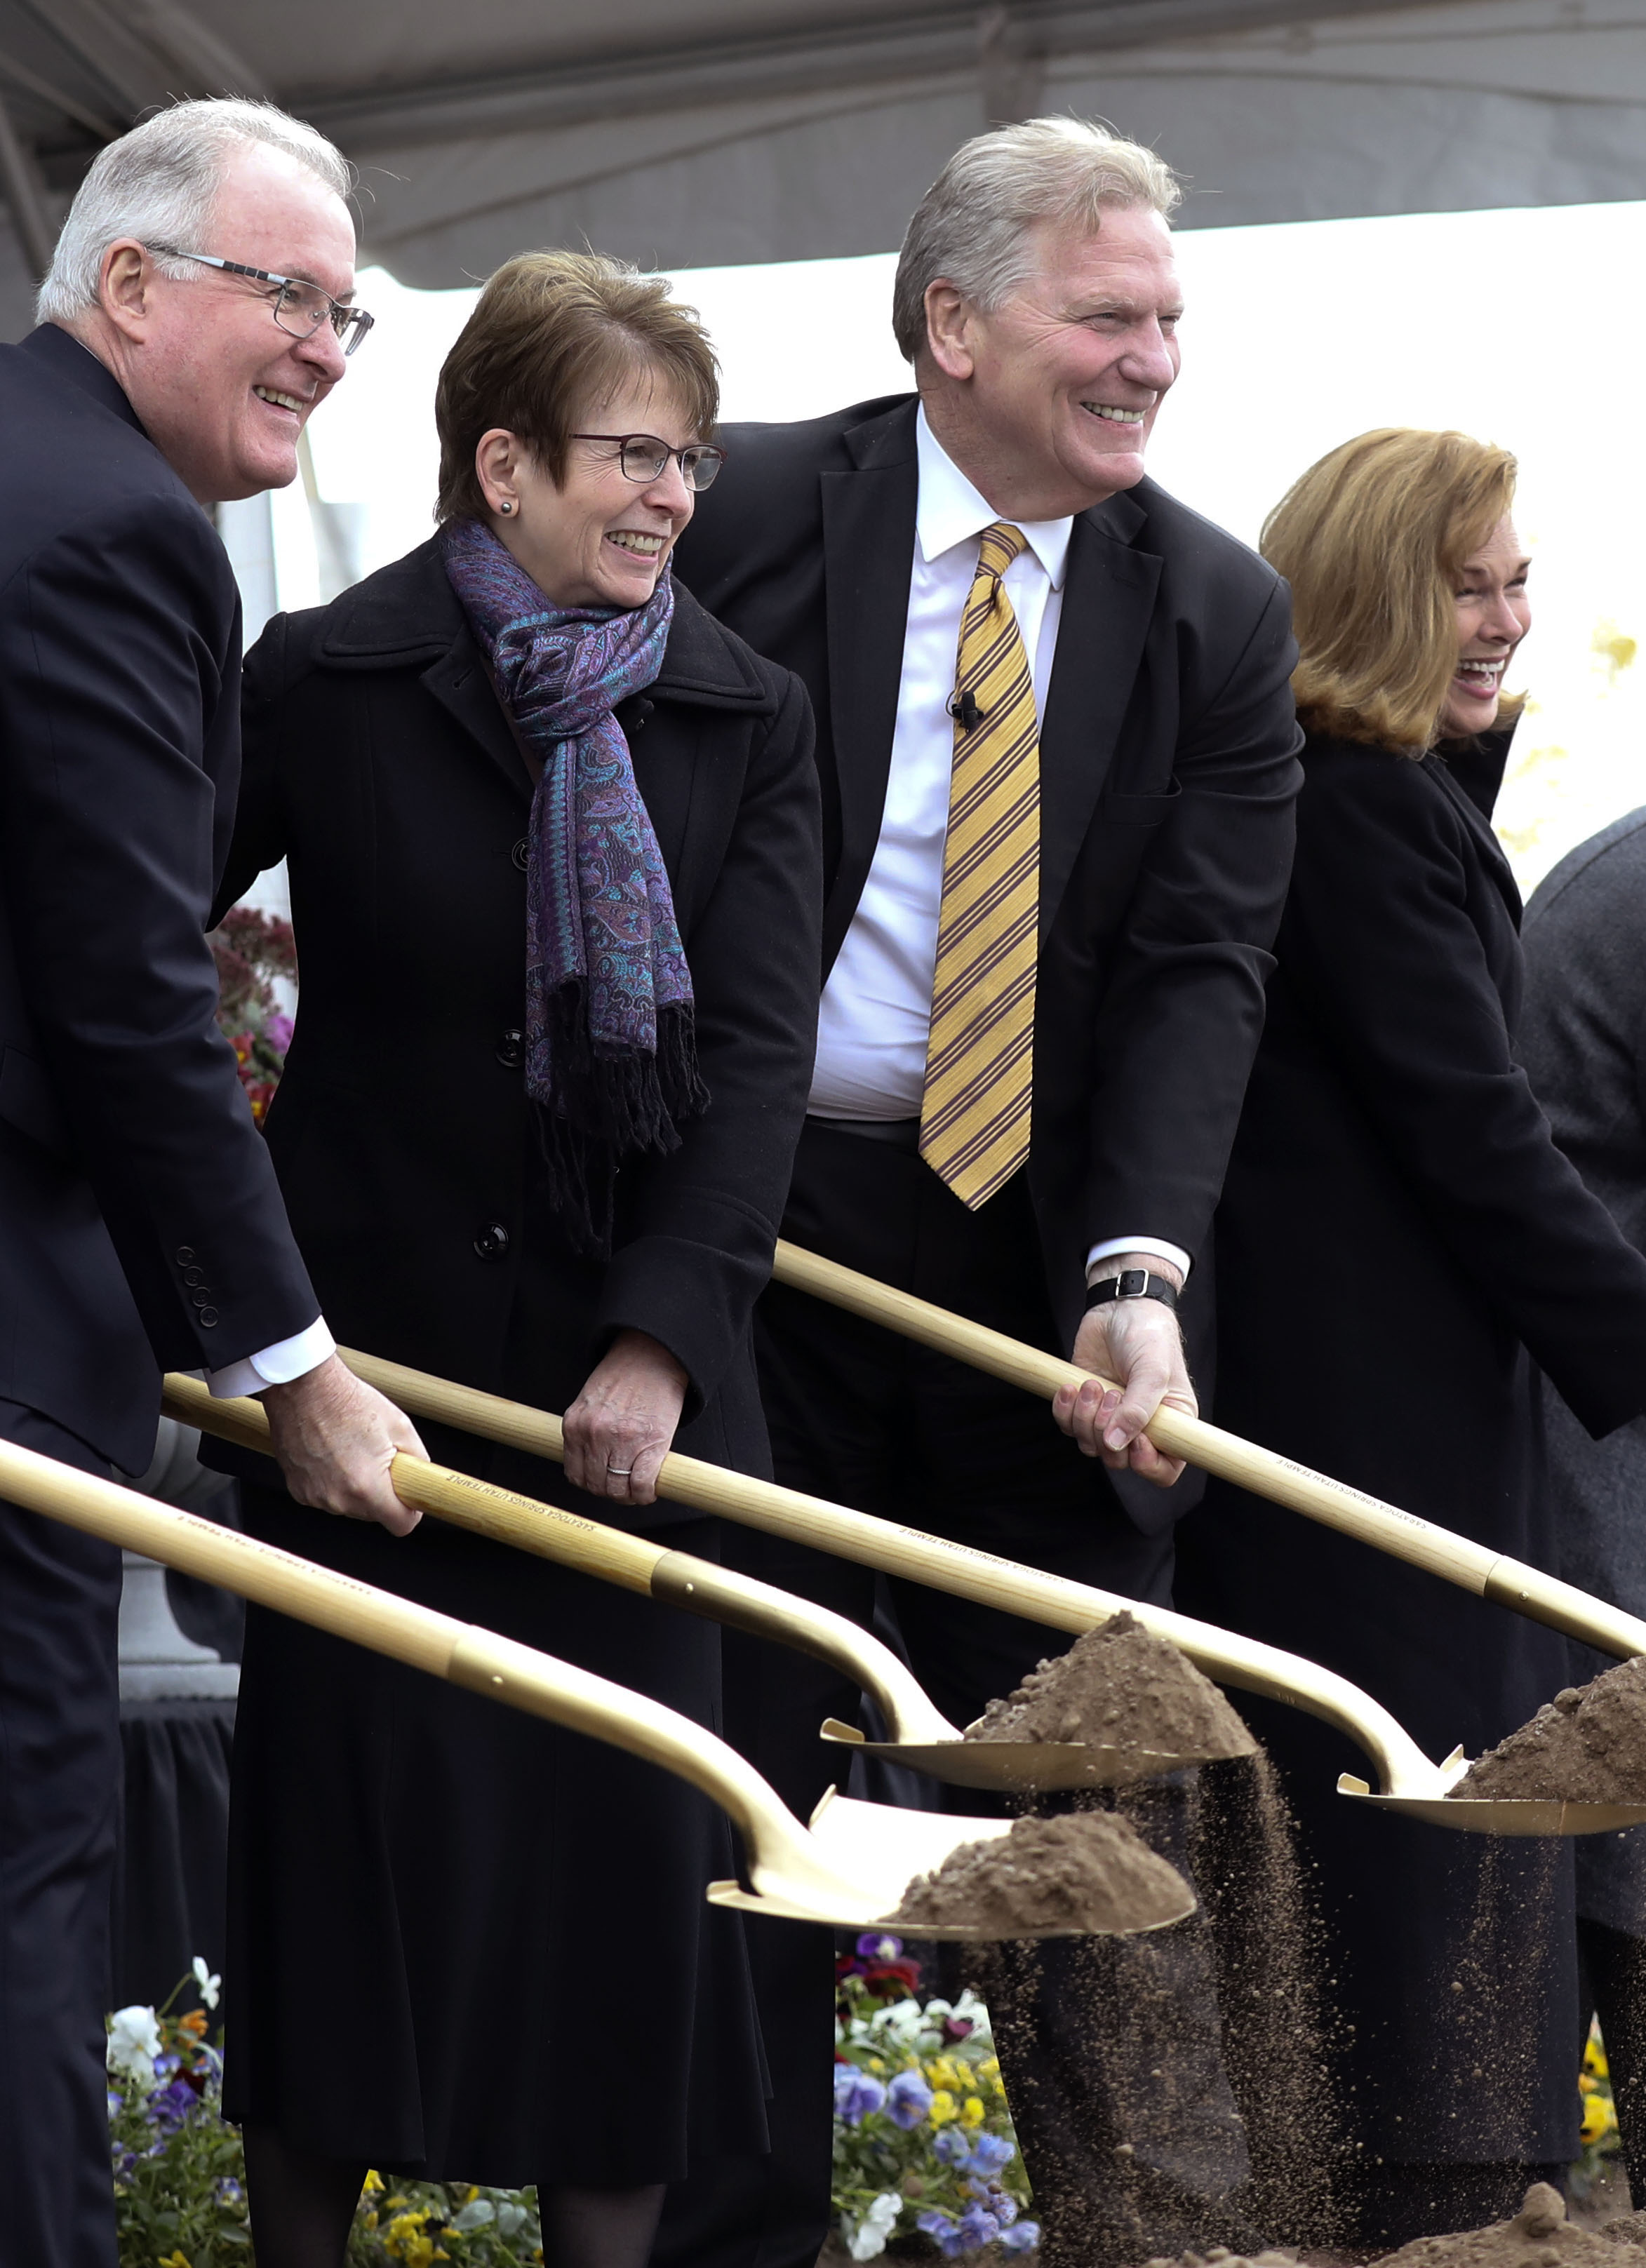 Elder Randy D. Funk, his wife Andrea, Elder Craig C. Christensen, president of the Utah Area, and his wife Debbie, throw dirt during the groundbreaking ceremony for the Saratoga Springs Utah Temple on Saturday, Oct. 19, 2019.